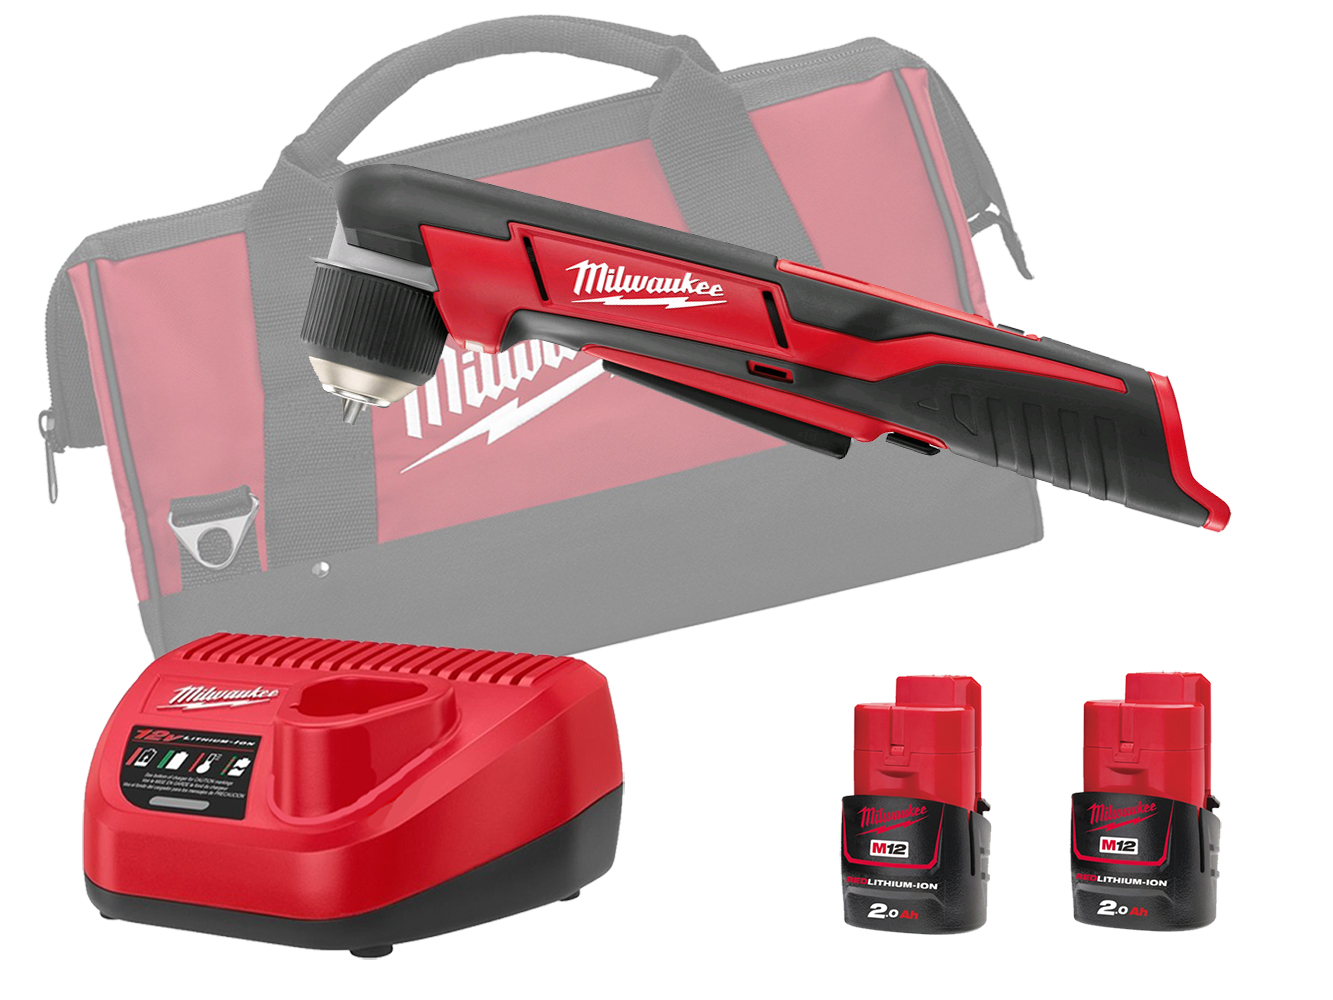 MILWAUKEE 12V COMPACT RIGHT ANGLE DRILL - C12RAD - 2.0AH PACK